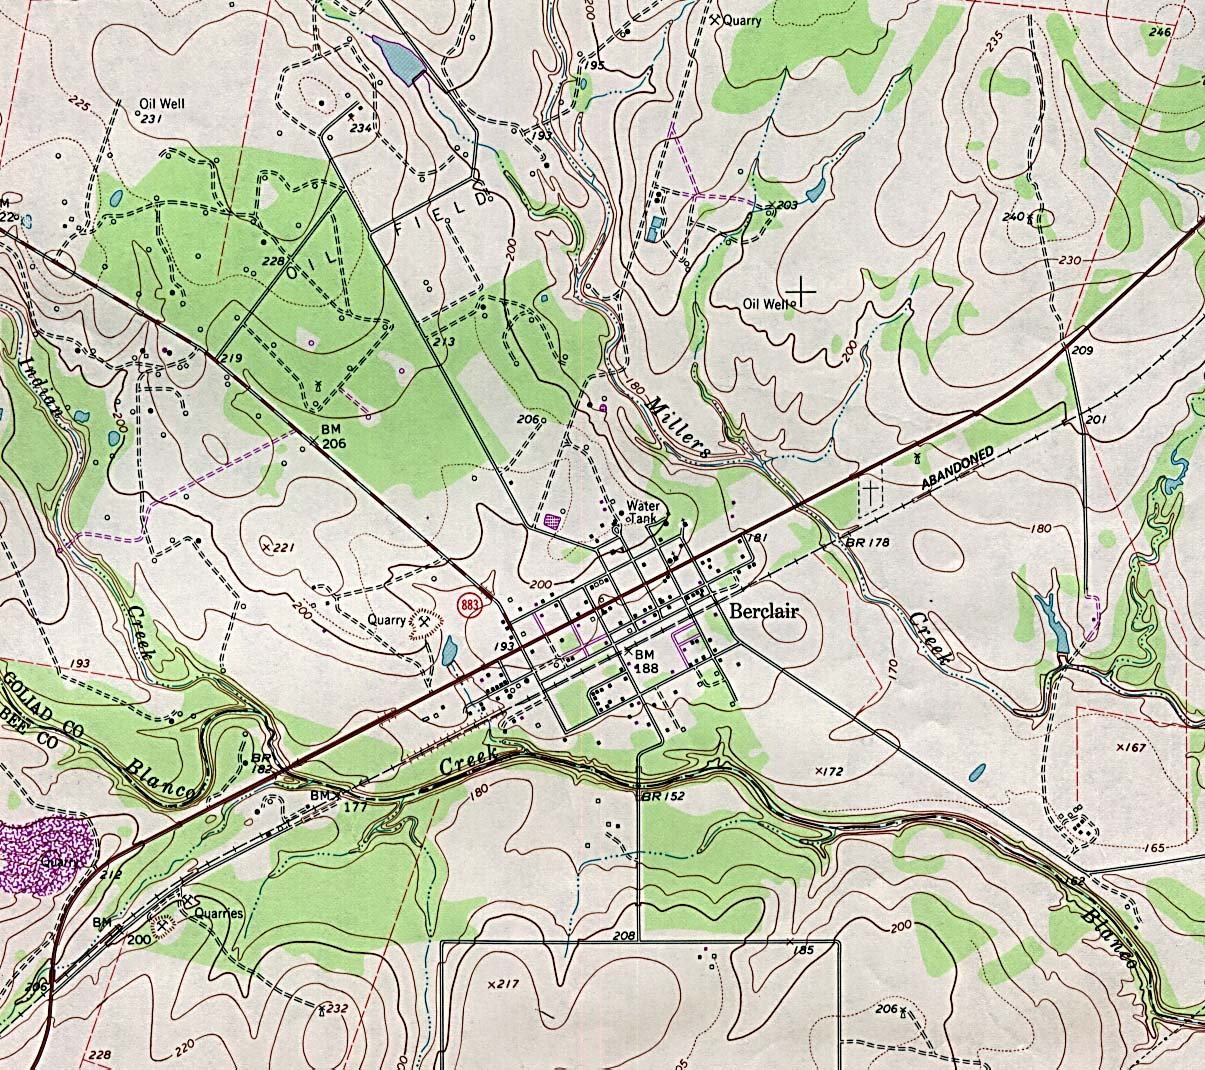 texas city maps  perrycastañeda map collection  ut library online -  berclair  topographic map